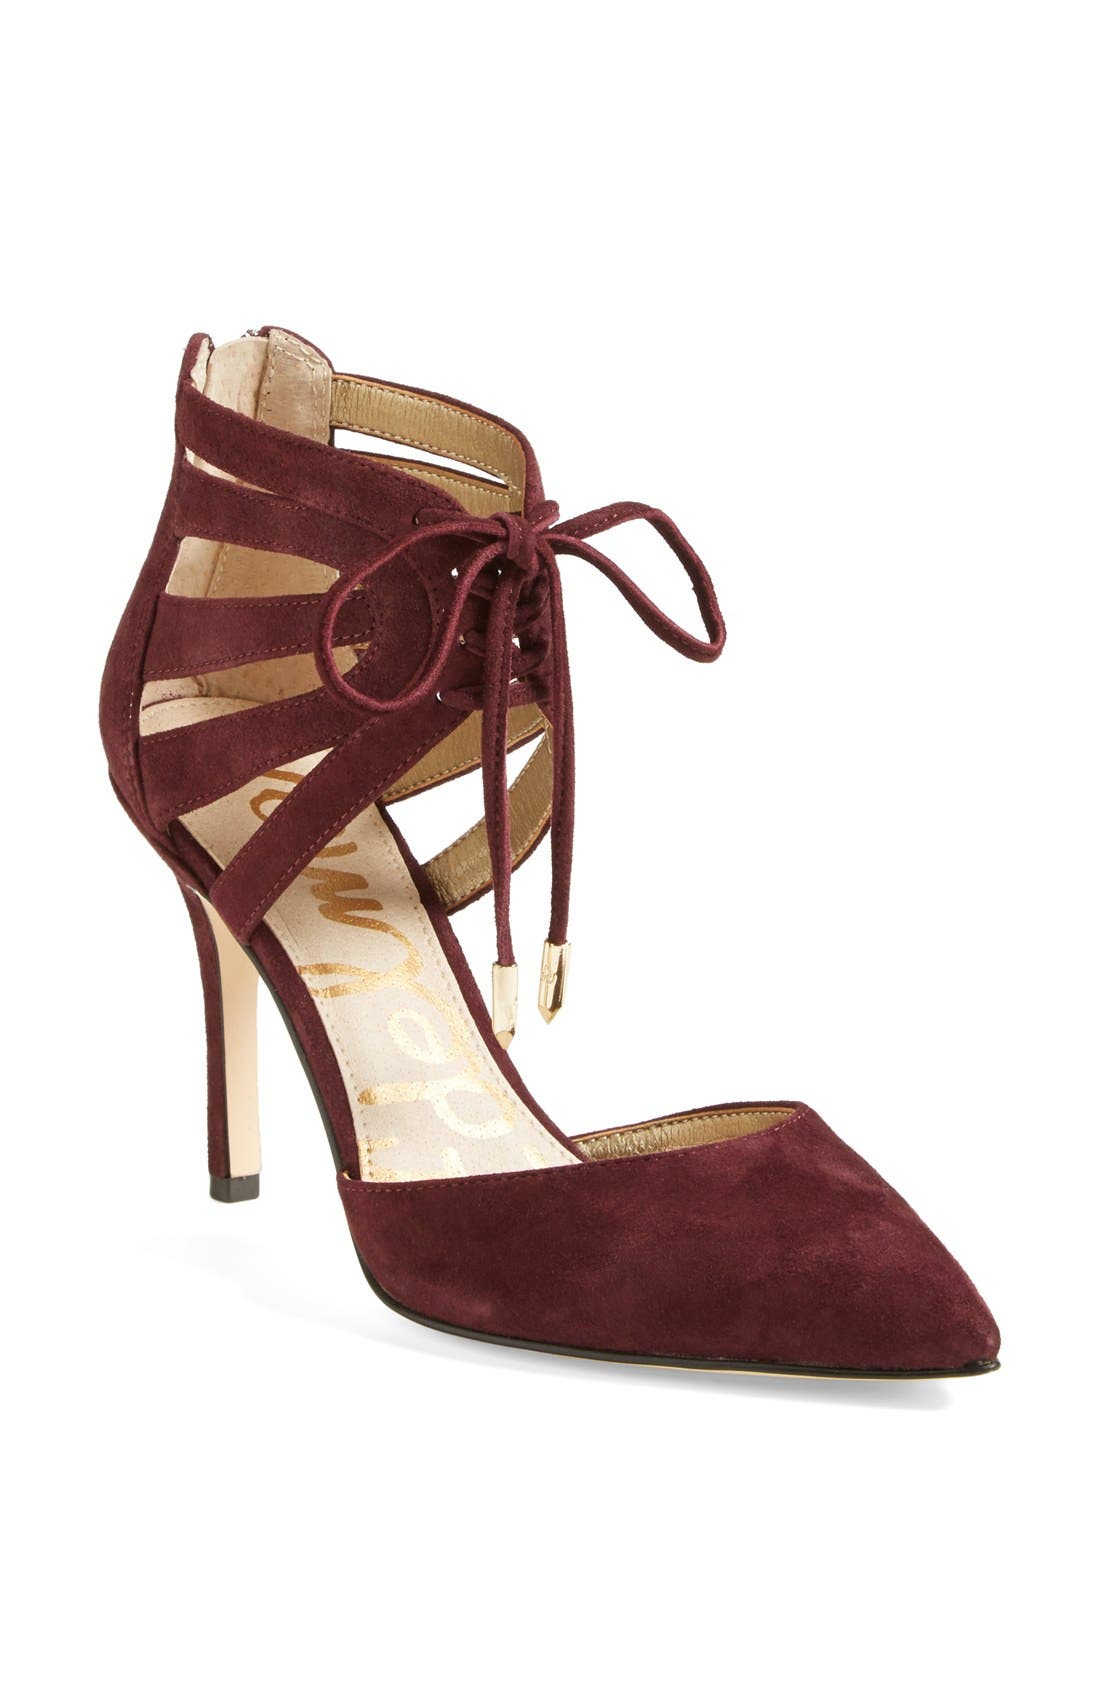 Alternate Image 1 Selected - Sam Edelman 'Zachary' Cutout Ankle Cuff Suede Pump (Women)